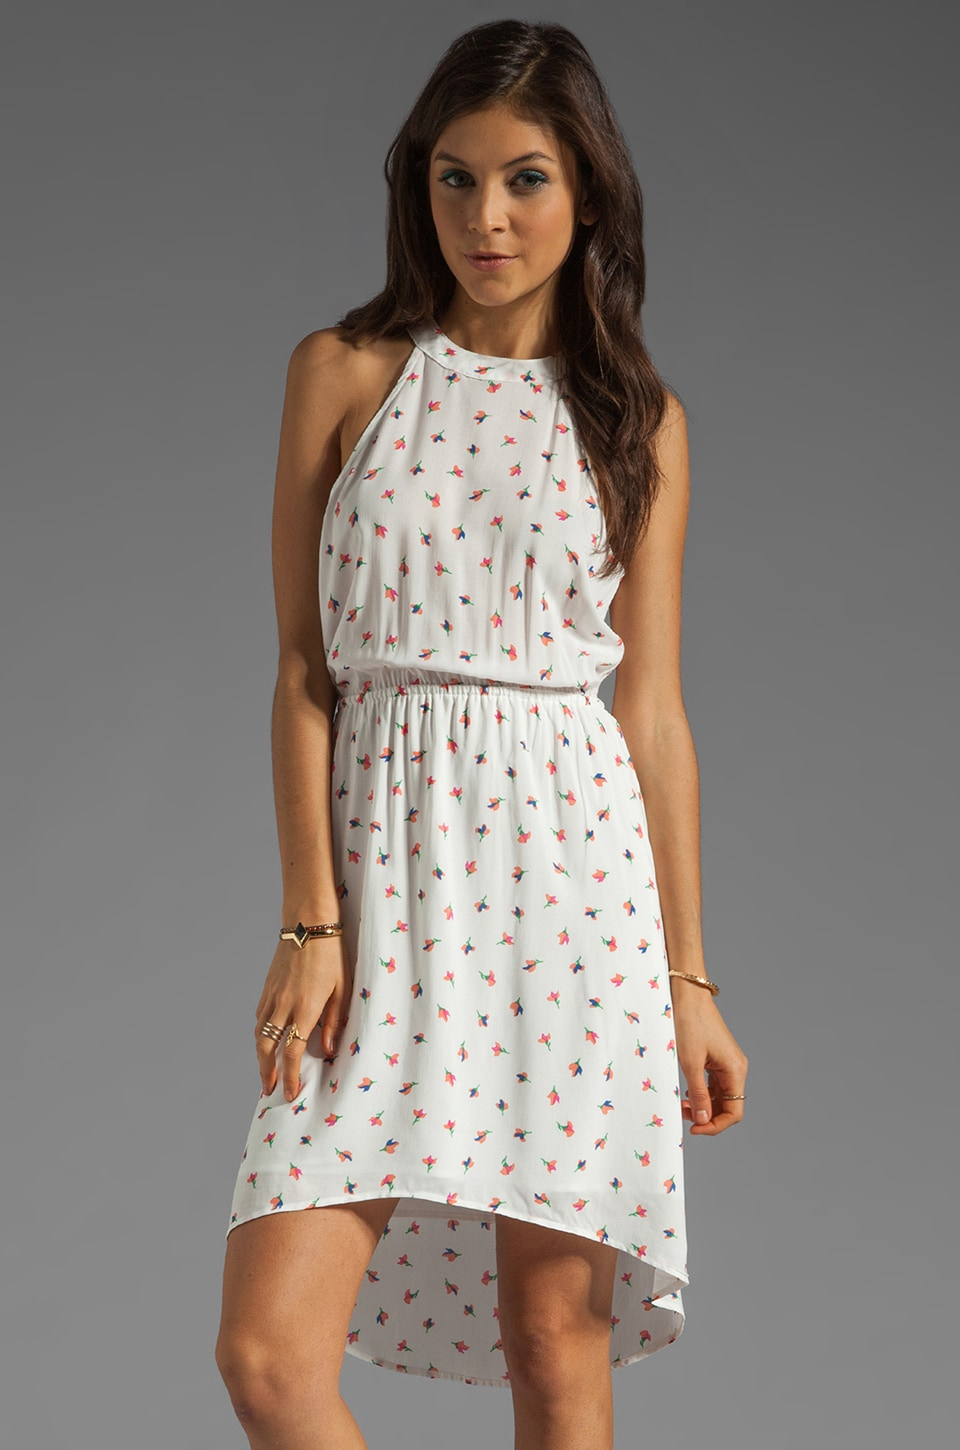 Splendid Parisian Tulip Dress in Soft White